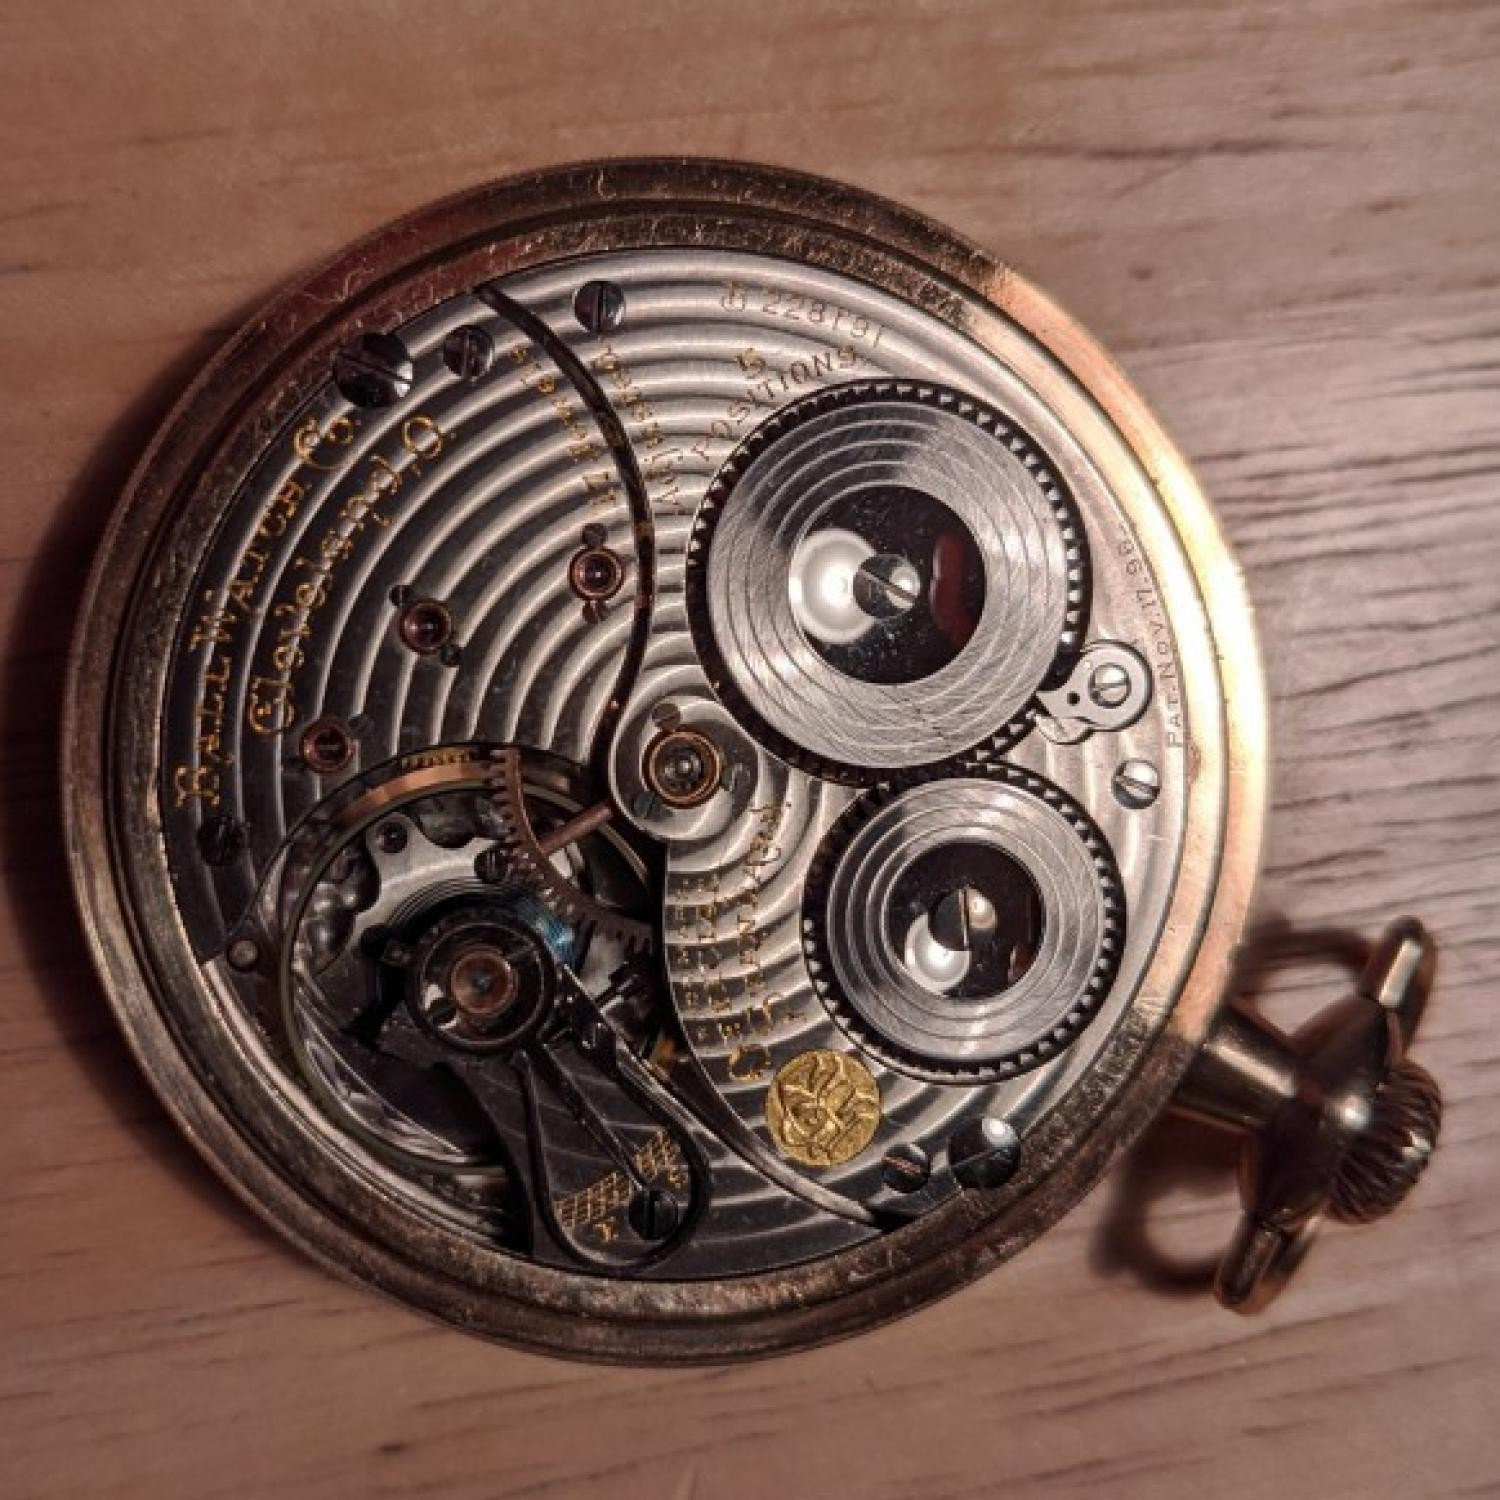 Image of Ball - Waltham Official Standard #B228191 Movement